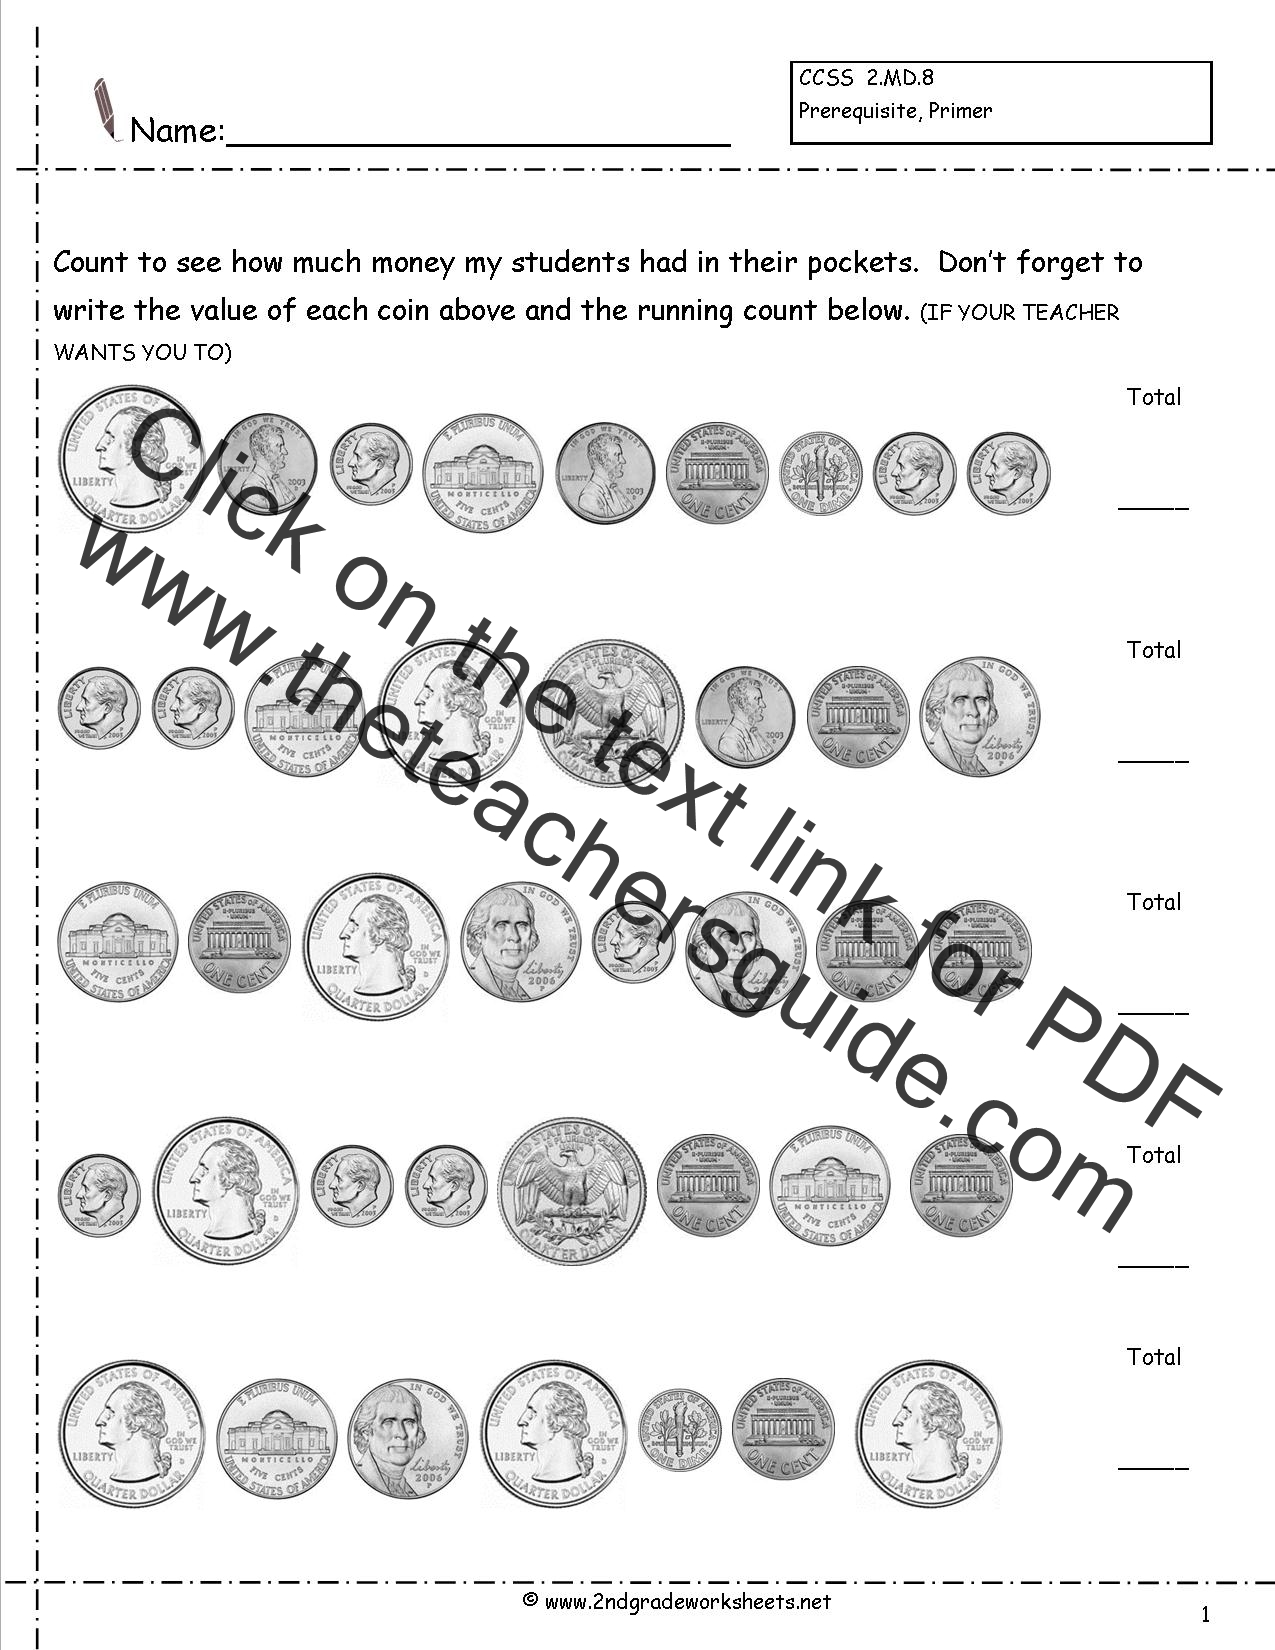 Worksheets Counting Coins Worksheets 2nd Grade counting coins and money worksheets printouts with quarters